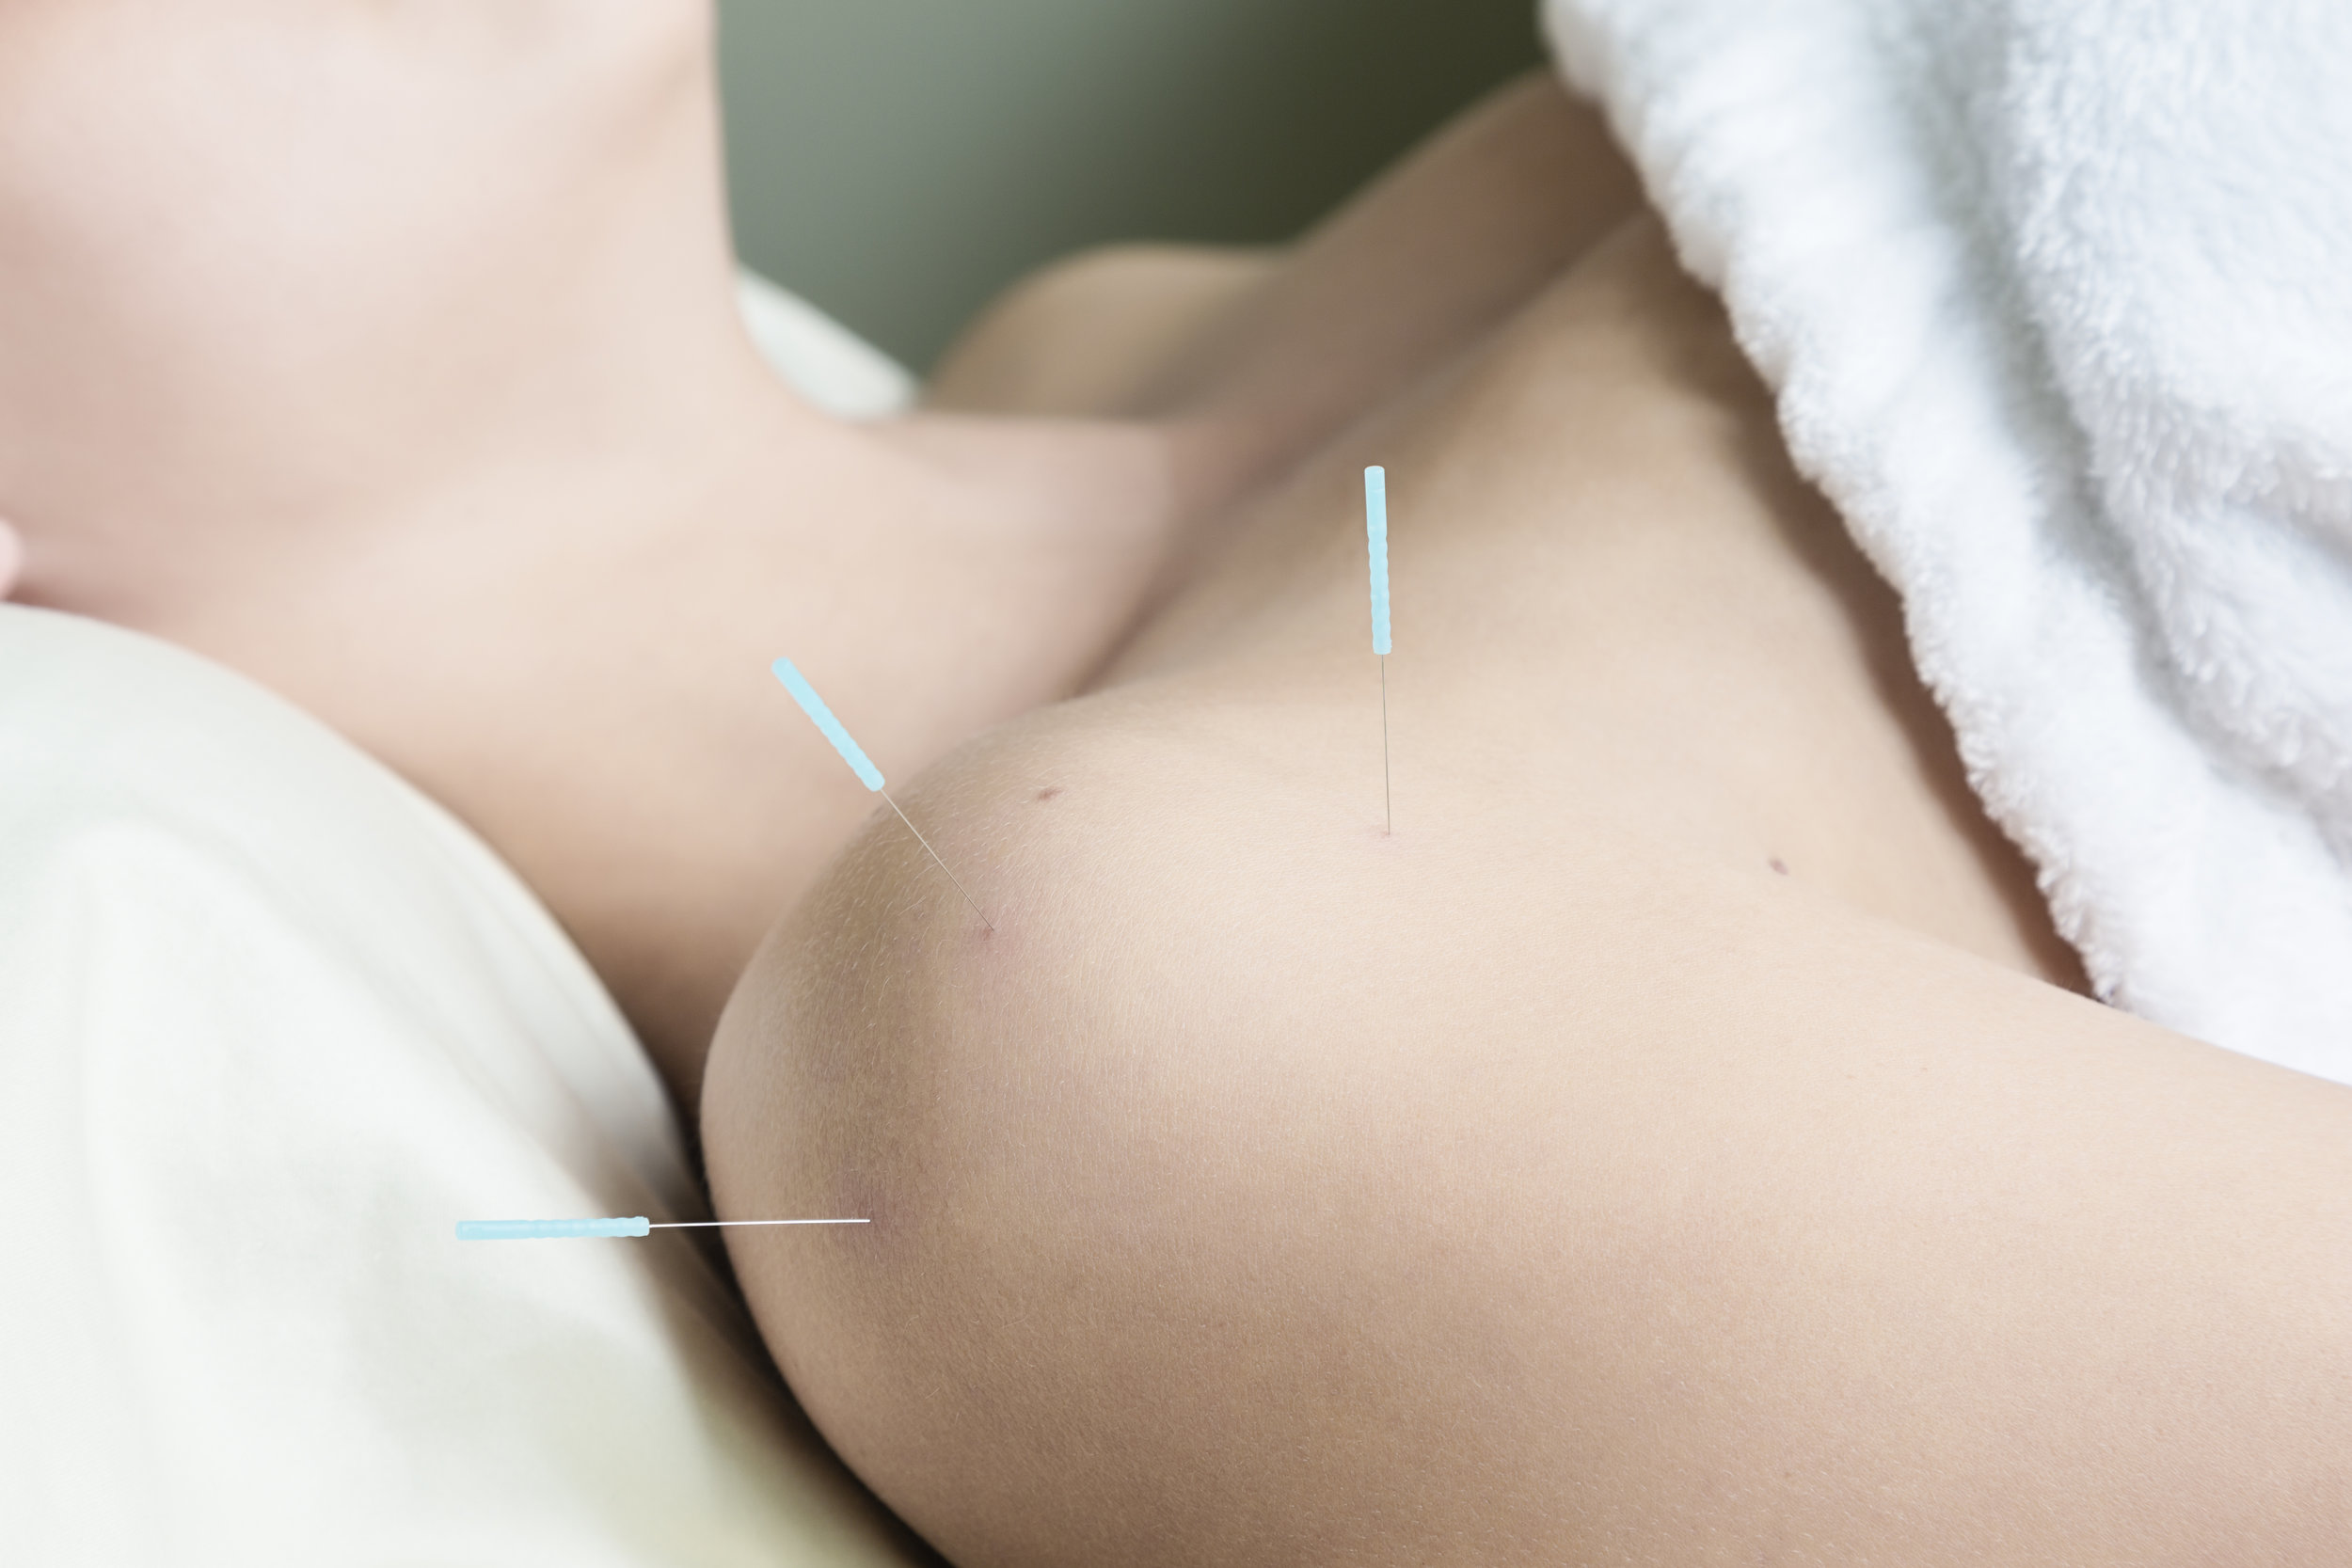 Woman-Getting-Acupuncture-Treatment-176589203_5760x3840 (1).jpeg